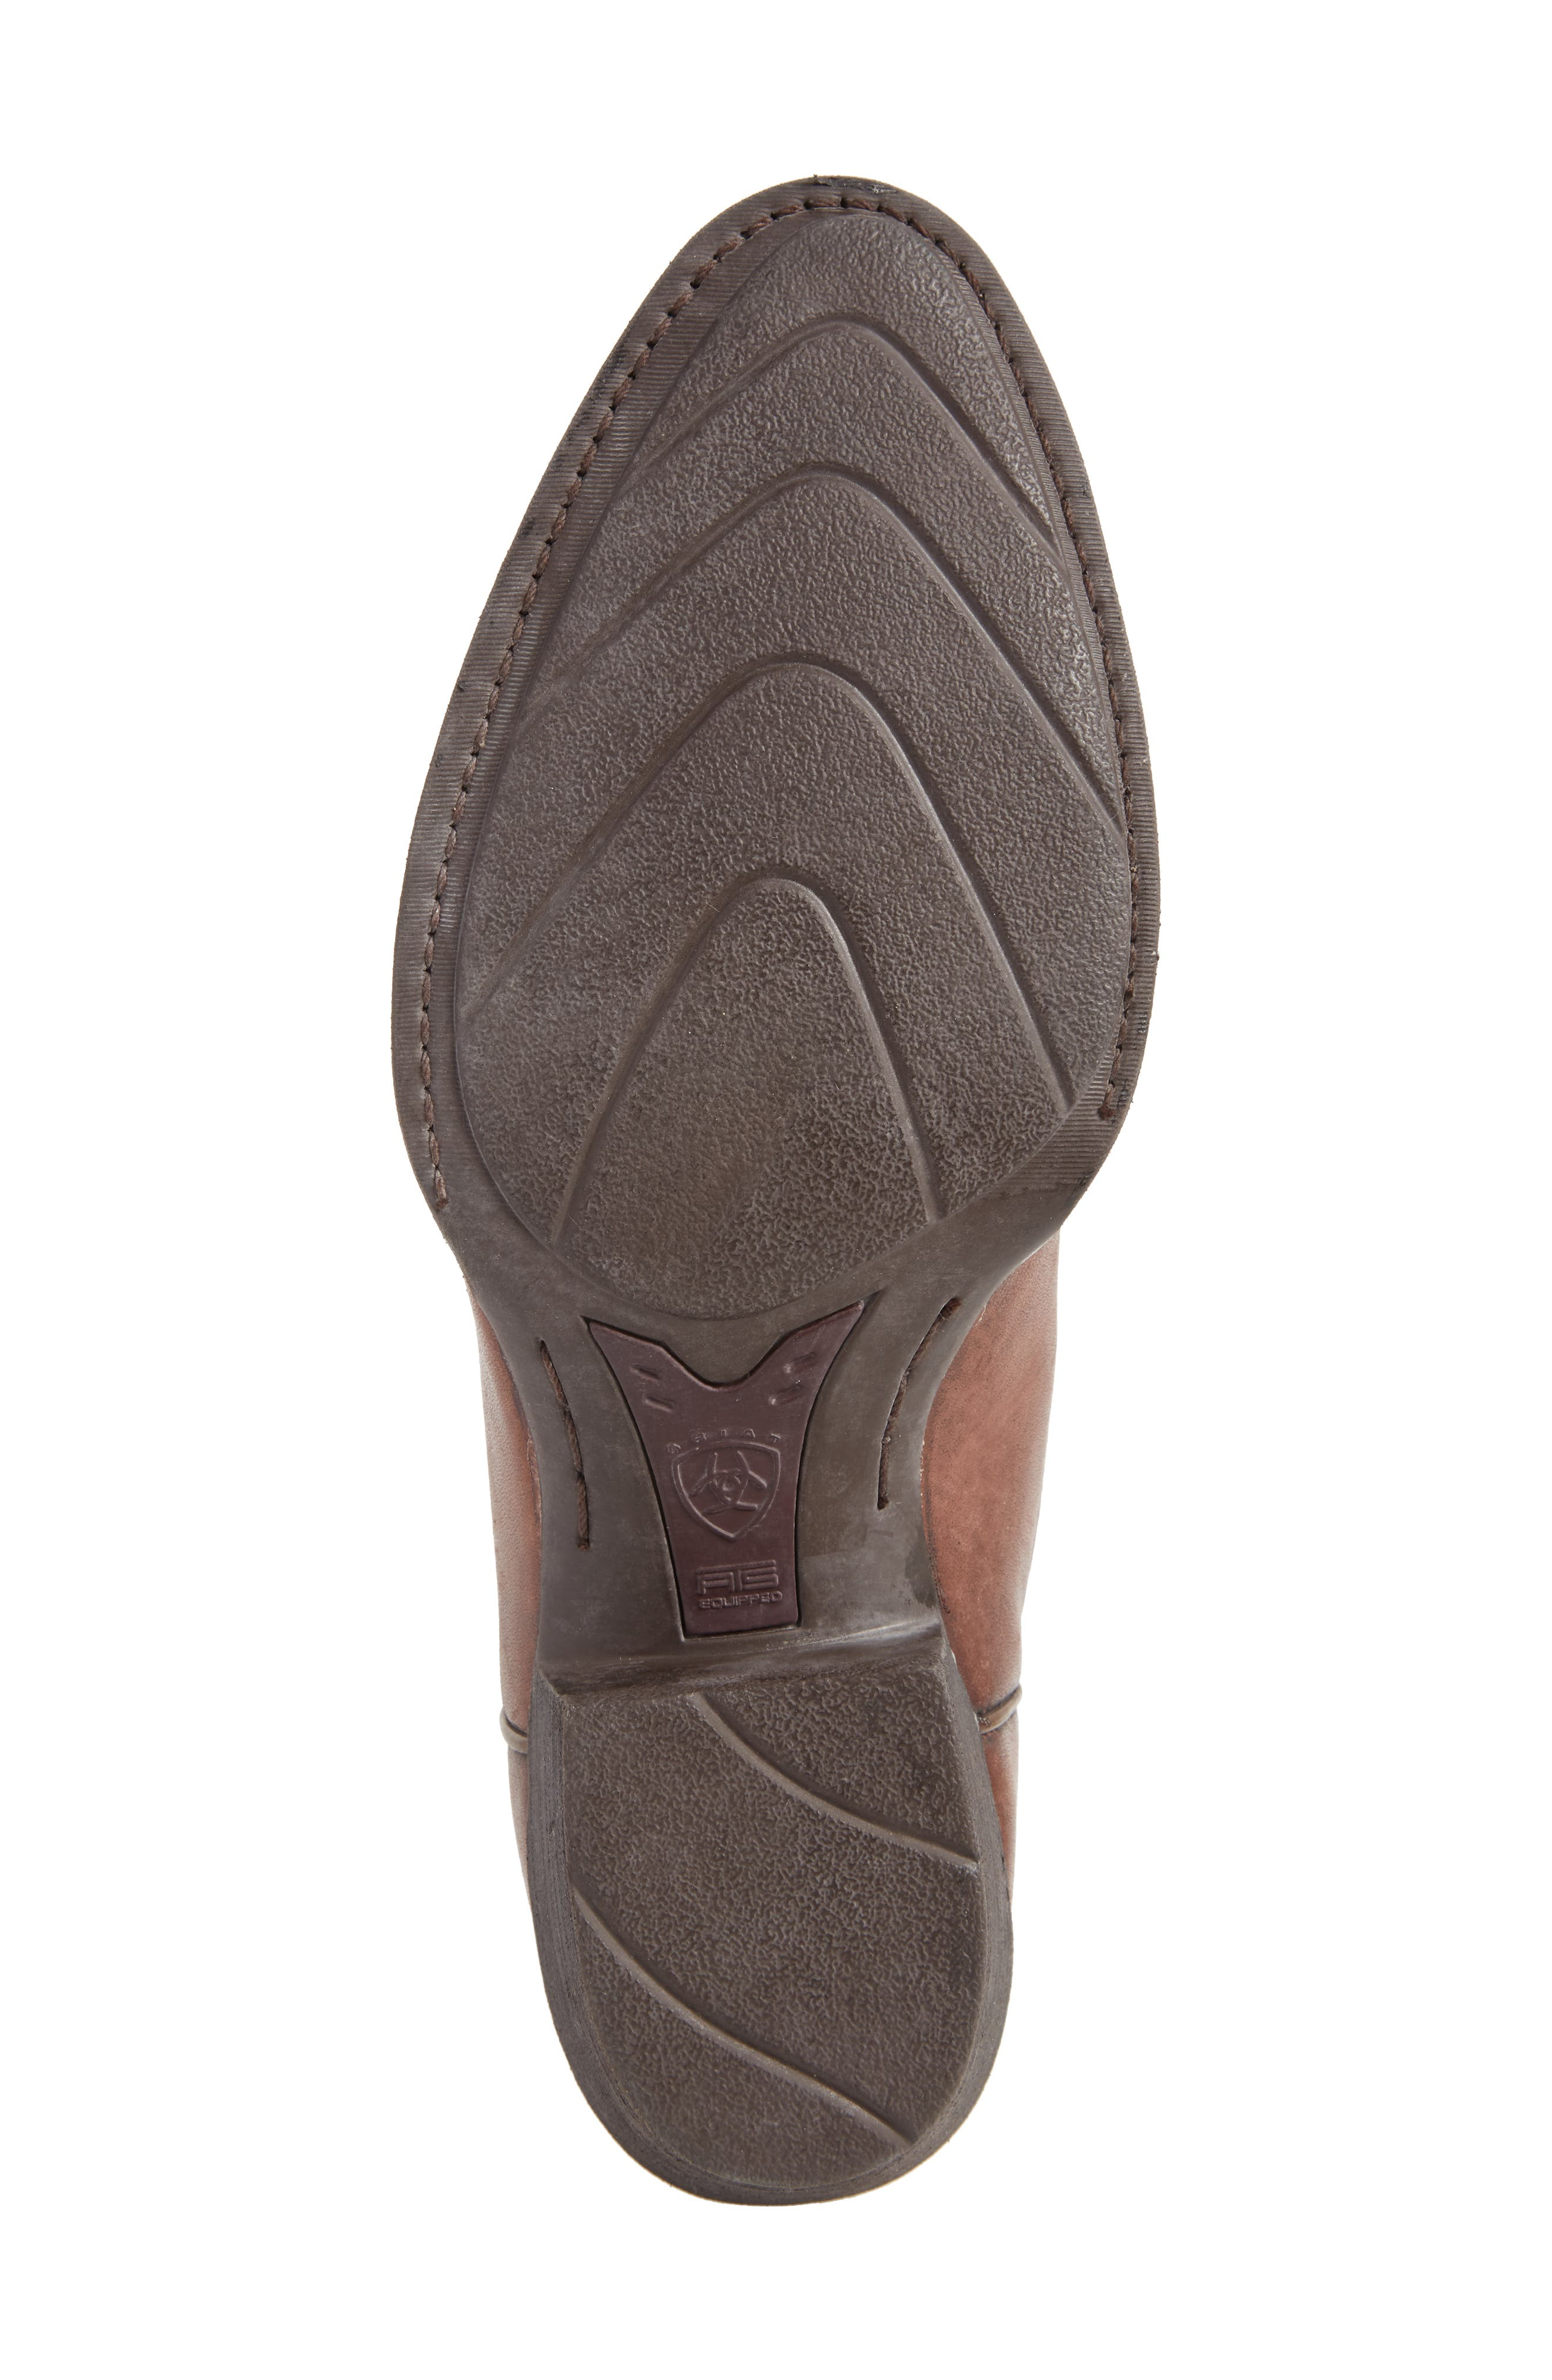 Heritage Calhoun Western R-Toe Boot,                             Alternate thumbnail 6, color,                             NATURAL BROWN LEATHER